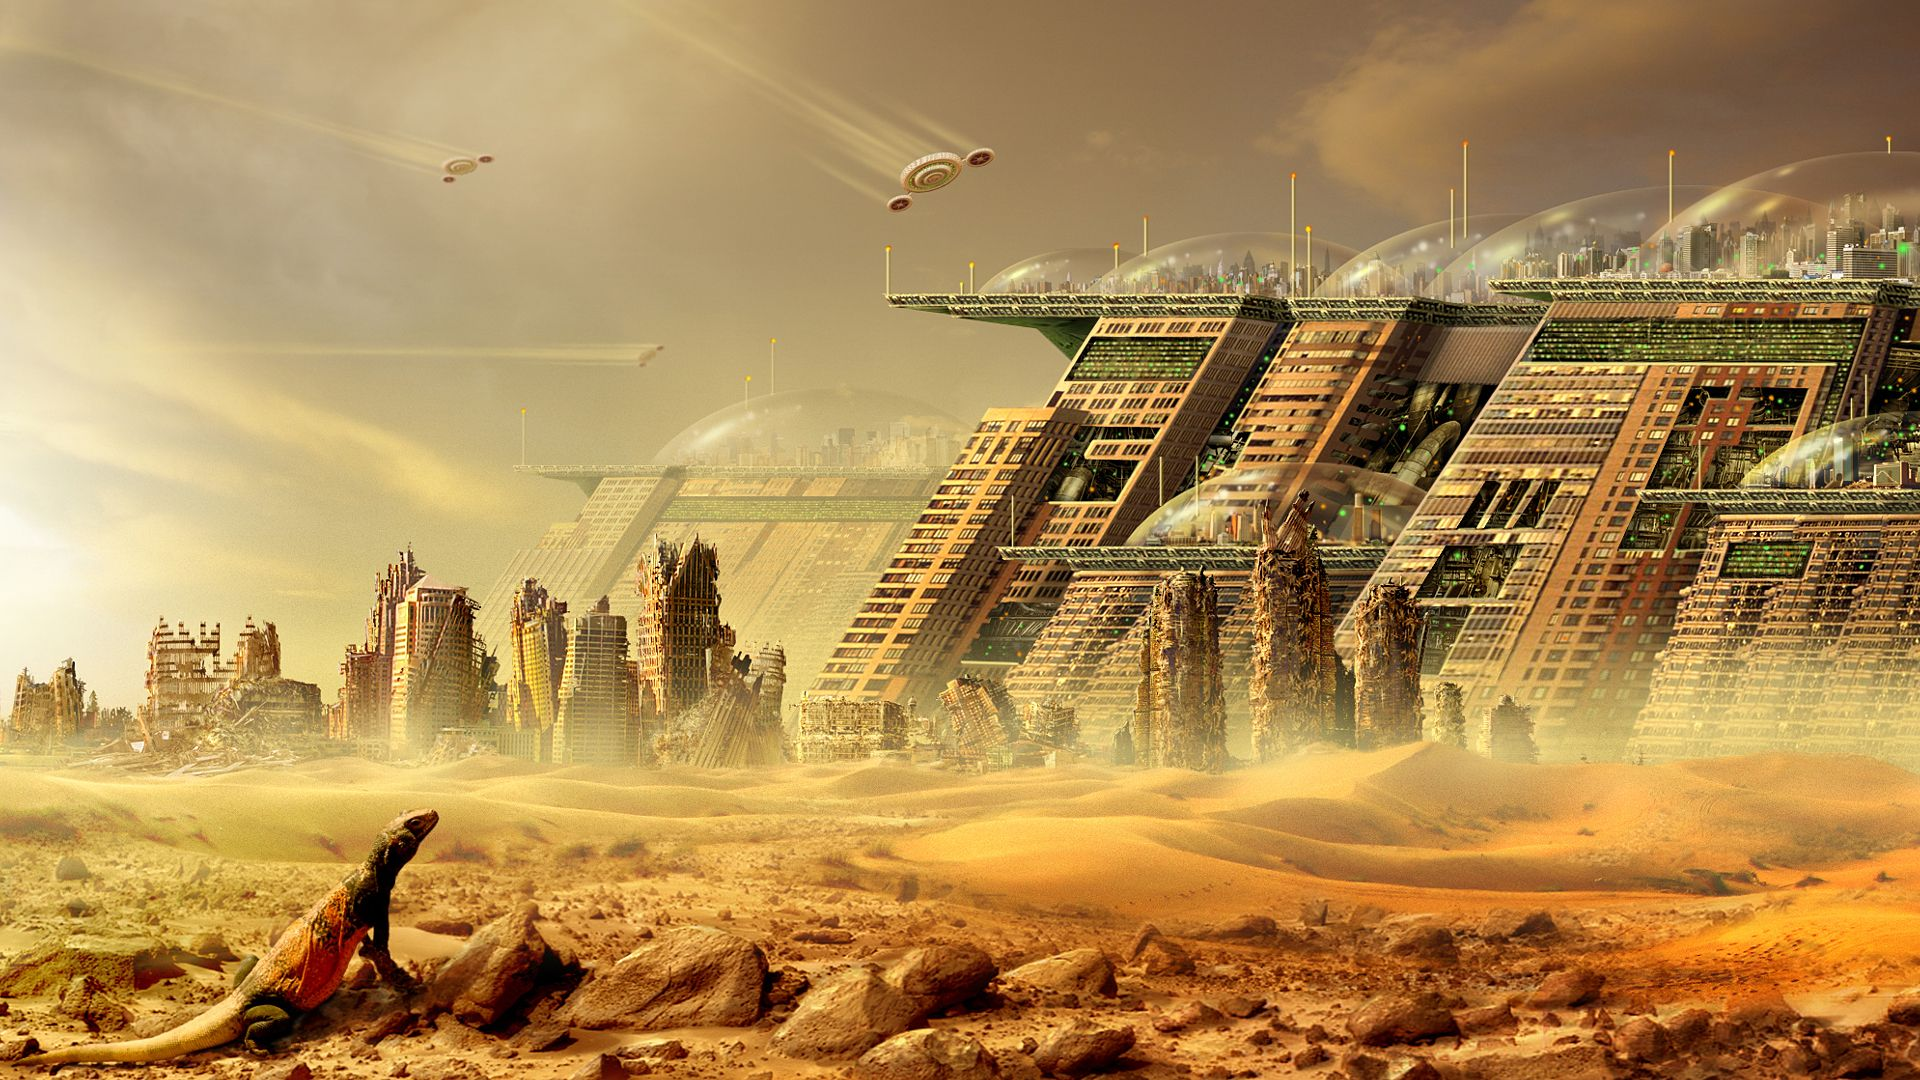 Sci Fi City Sci Fi Cityscape Future Technology Ship Dome Desert ...